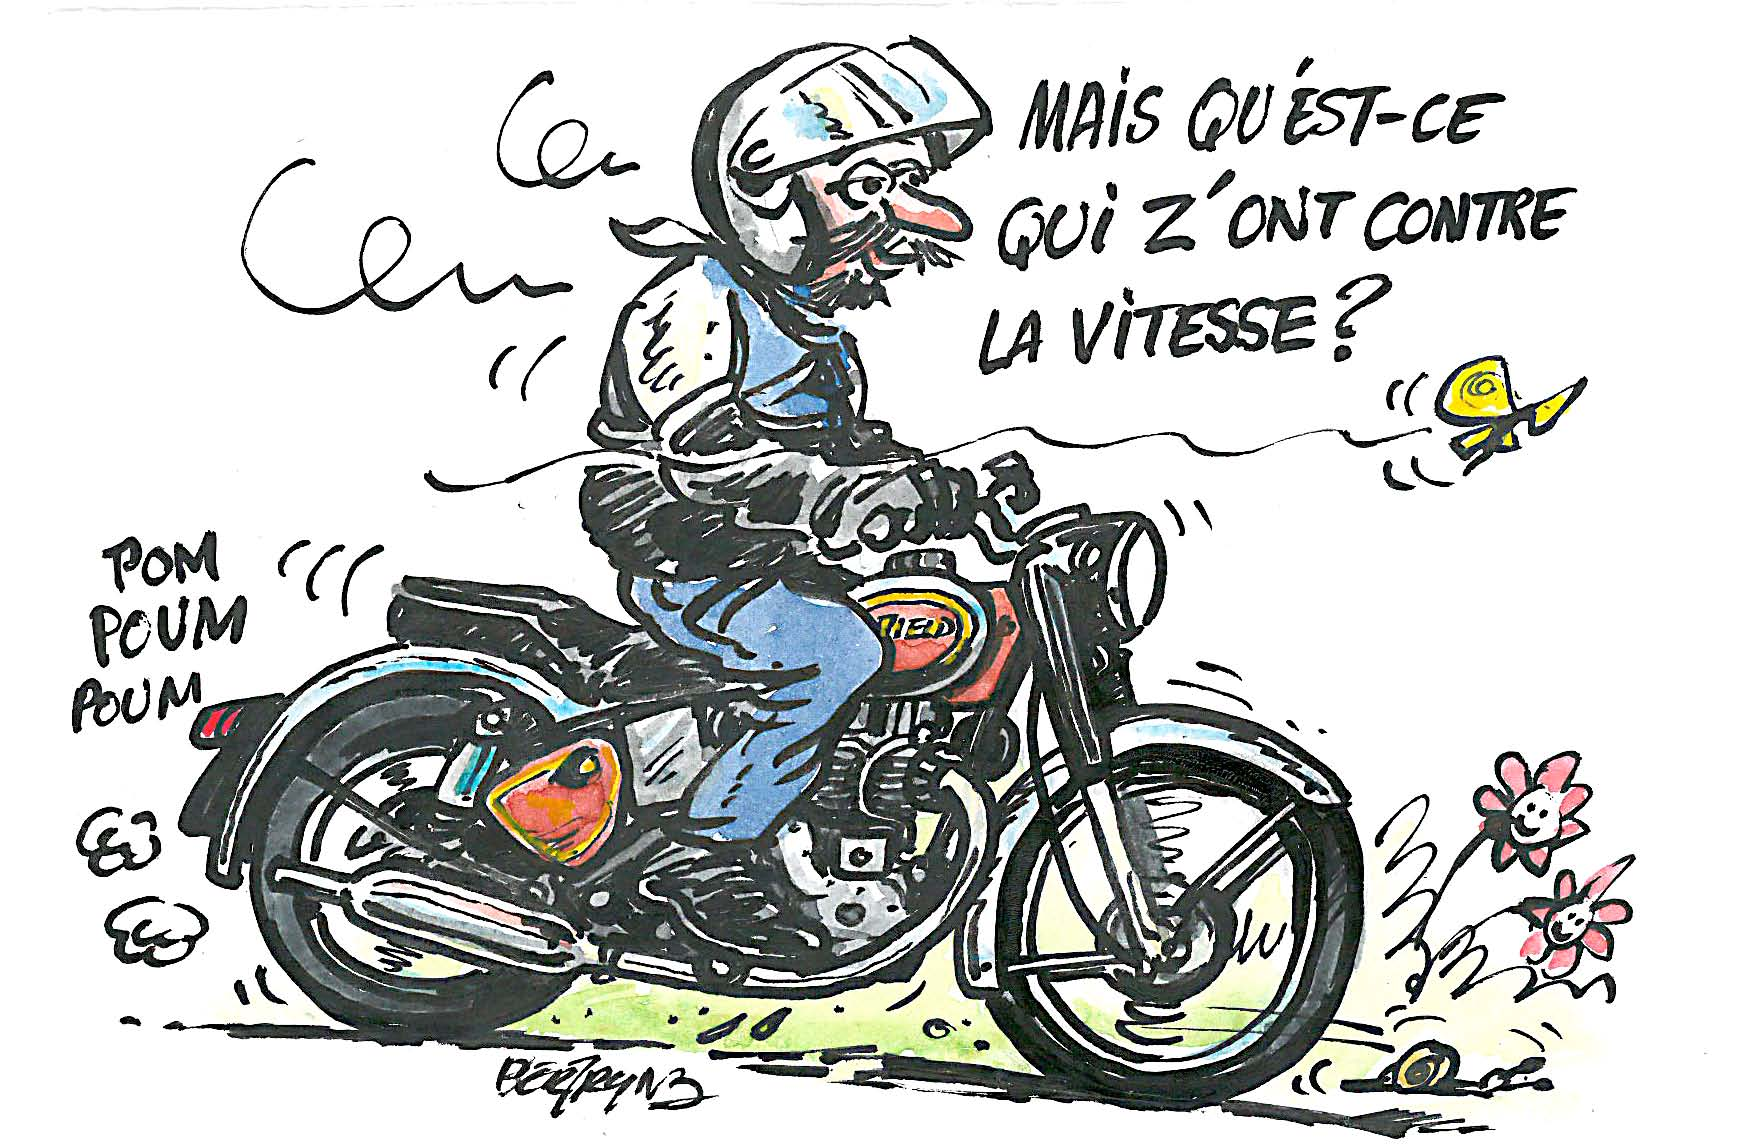 Le blog de la r daction le blog de la r daction - Dessin humoristique motard ...